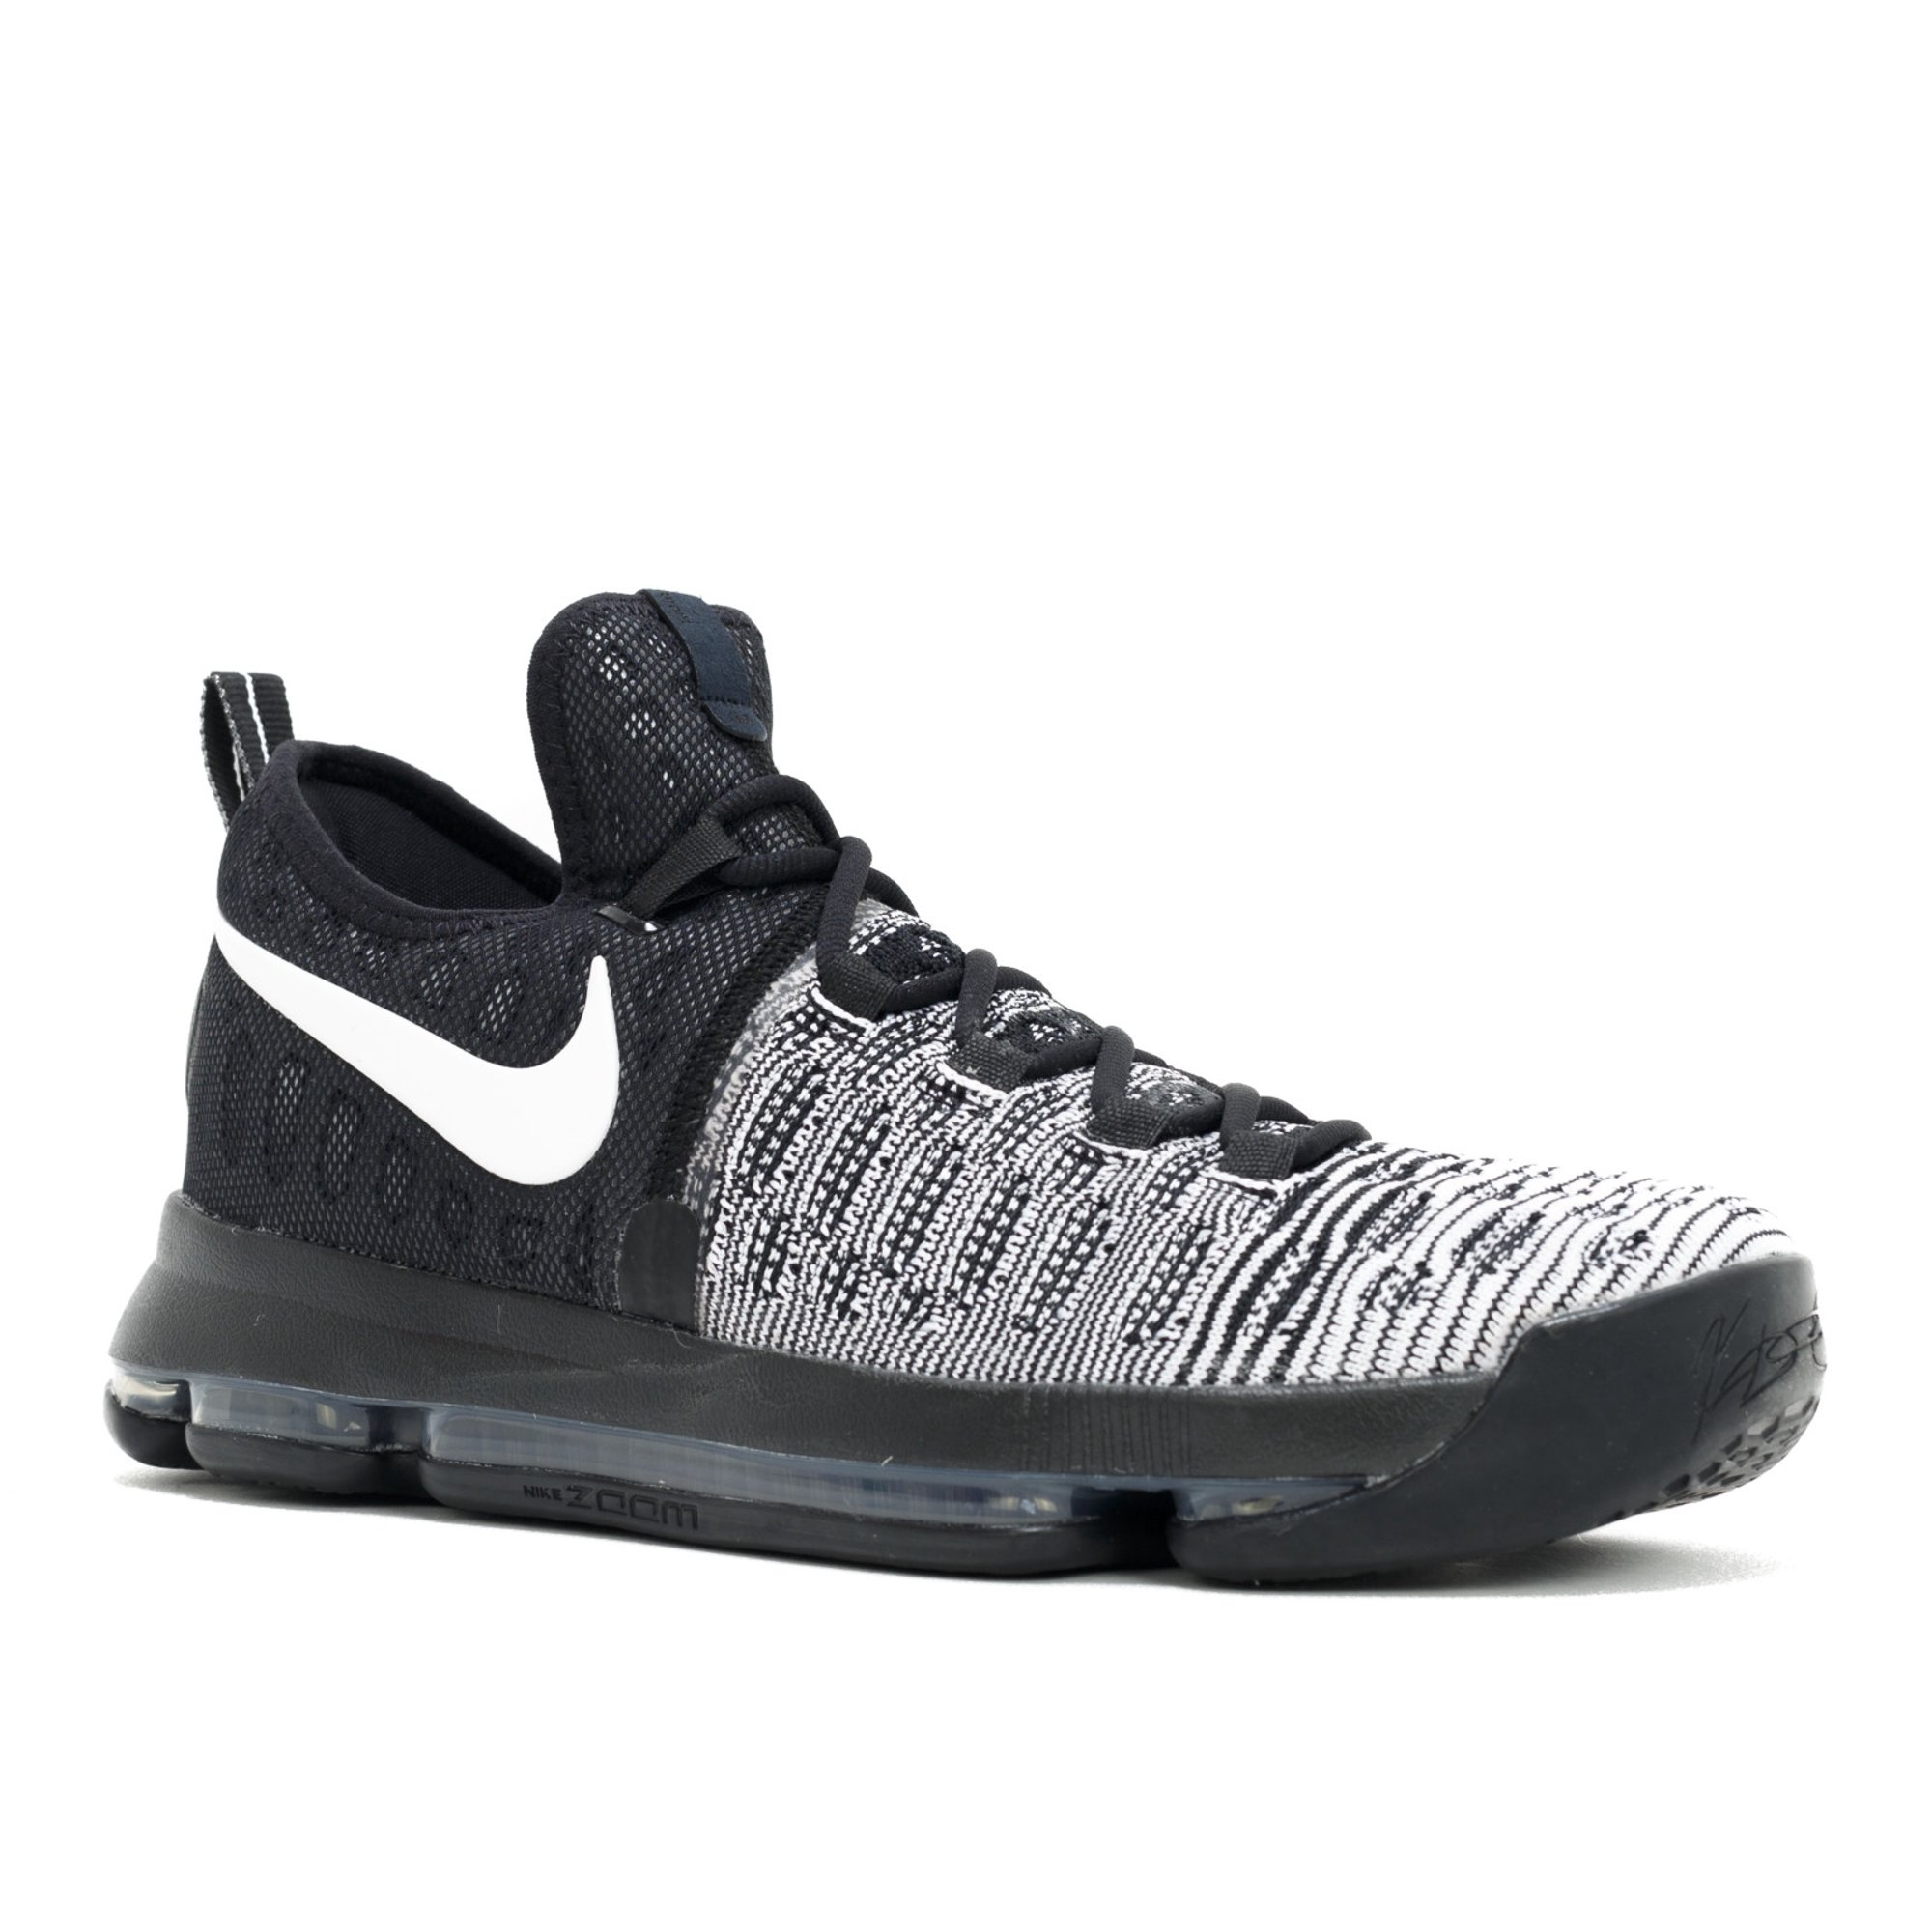 best sneakers ca573 6fd95 Nike - Men - Zoom Kd 9 'Mic Drop' - 843392-010 - Size 11